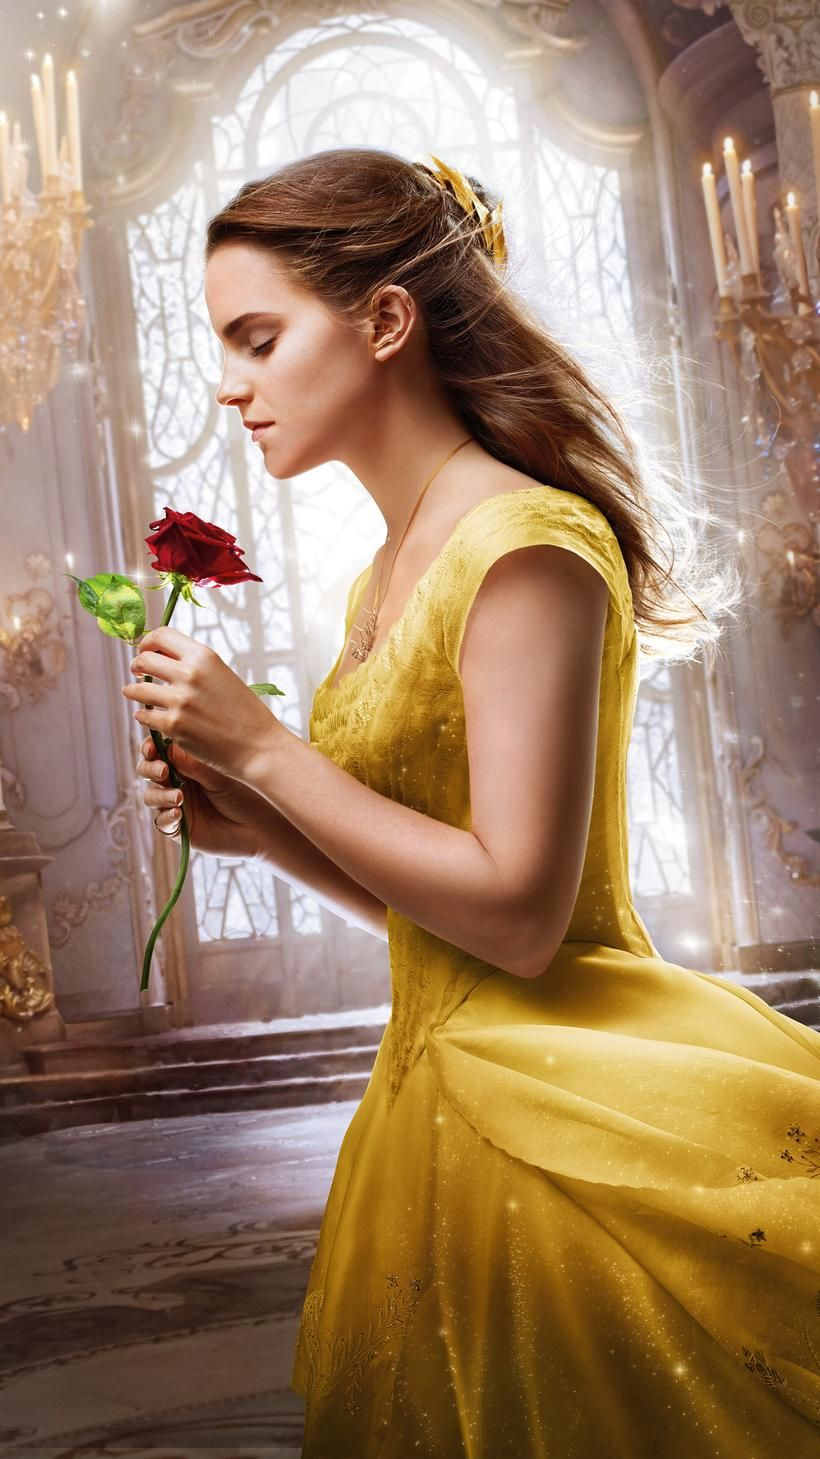 Popular Phone Wallpapers Moviemania Beauty And The Beast Movie Emma Watson Belle Beauty And The Beast